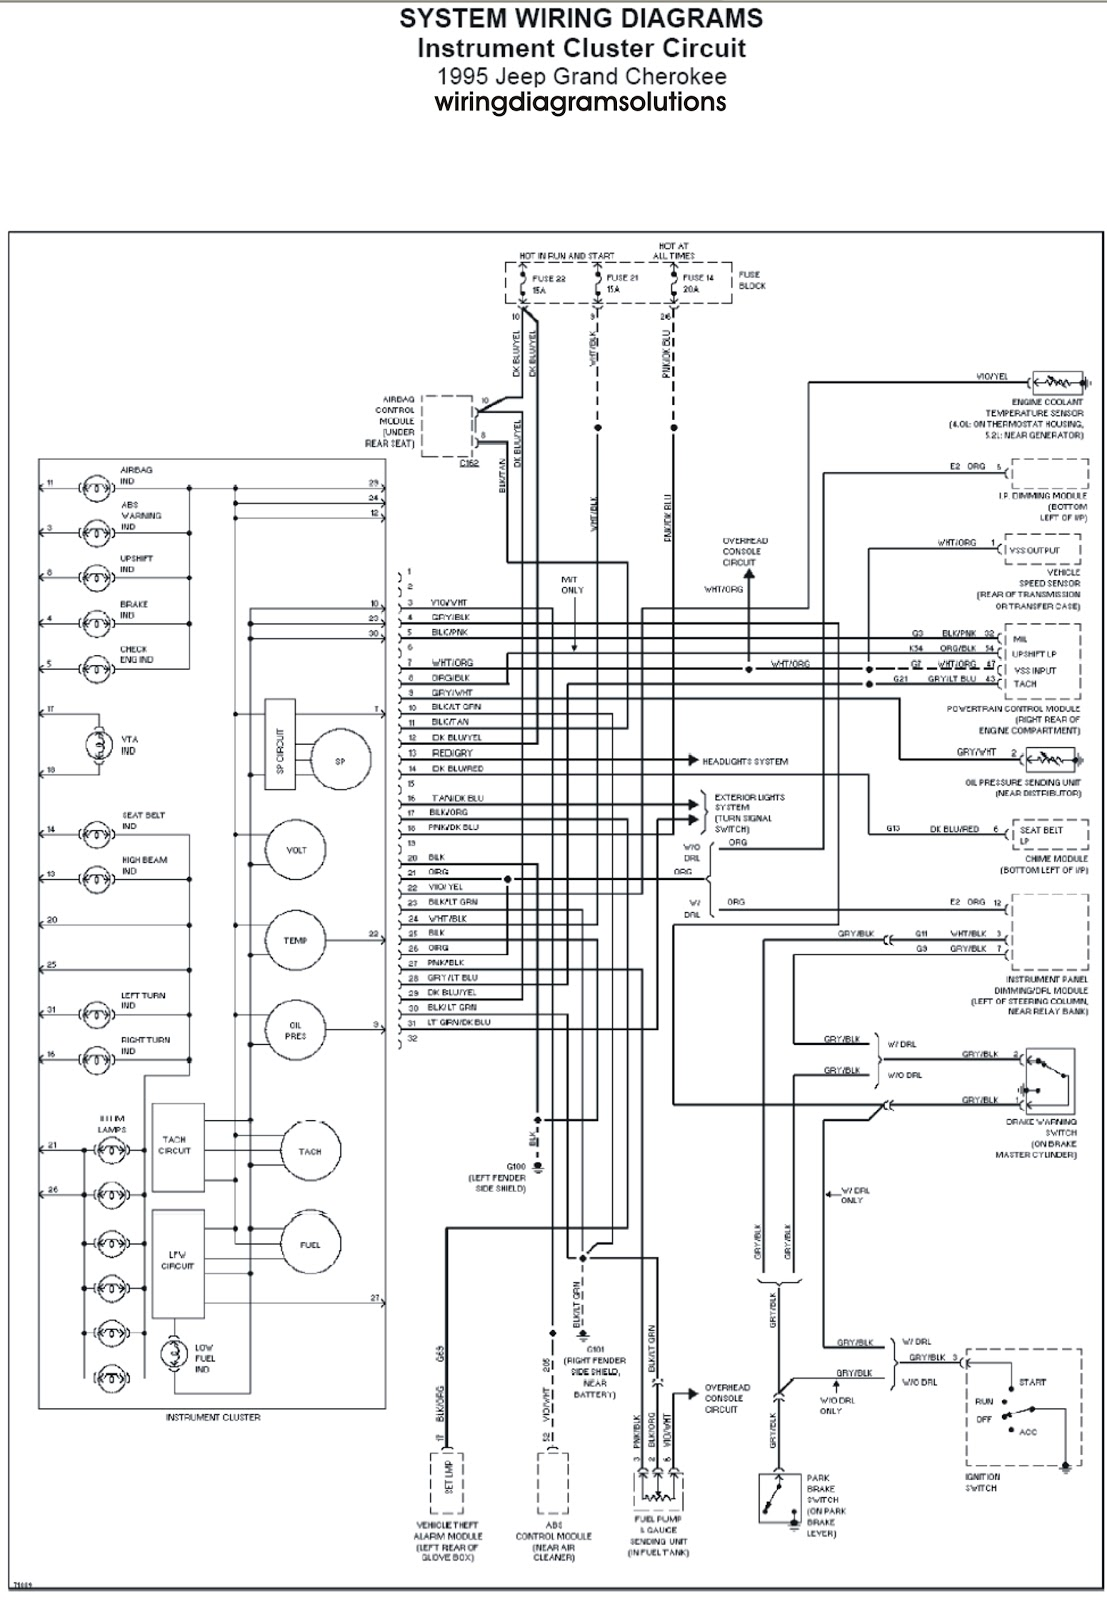 1996 celica wiring diagram wiring diagram todays 2001 celica fuse diagram 1996 celica ignition wiring diagram [ 1107 x 1600 Pixel ]